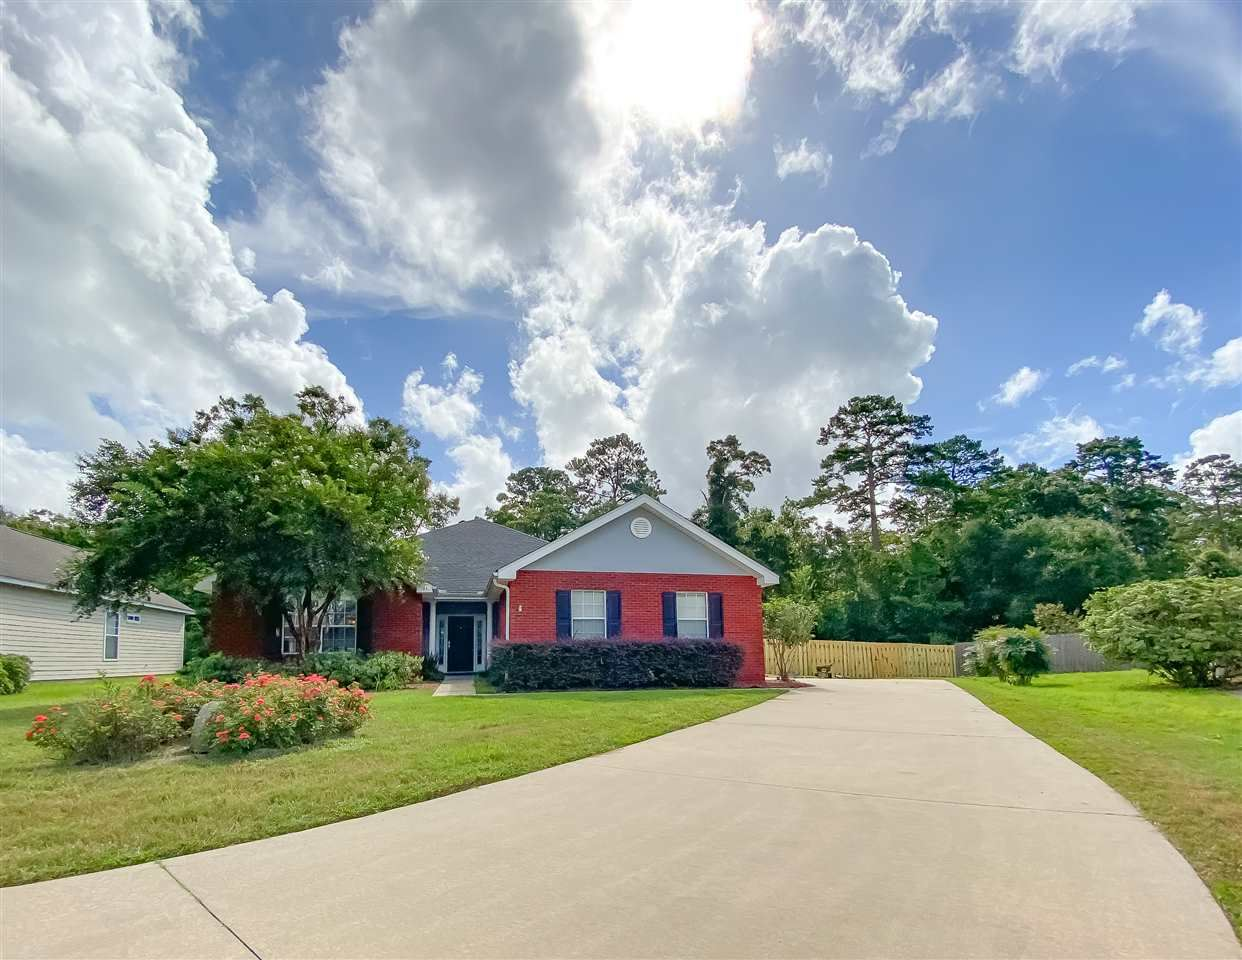 Photo of 193 Pitkin Terrace, TALLAHASSEE, FL 32317 (MLS # 322921)